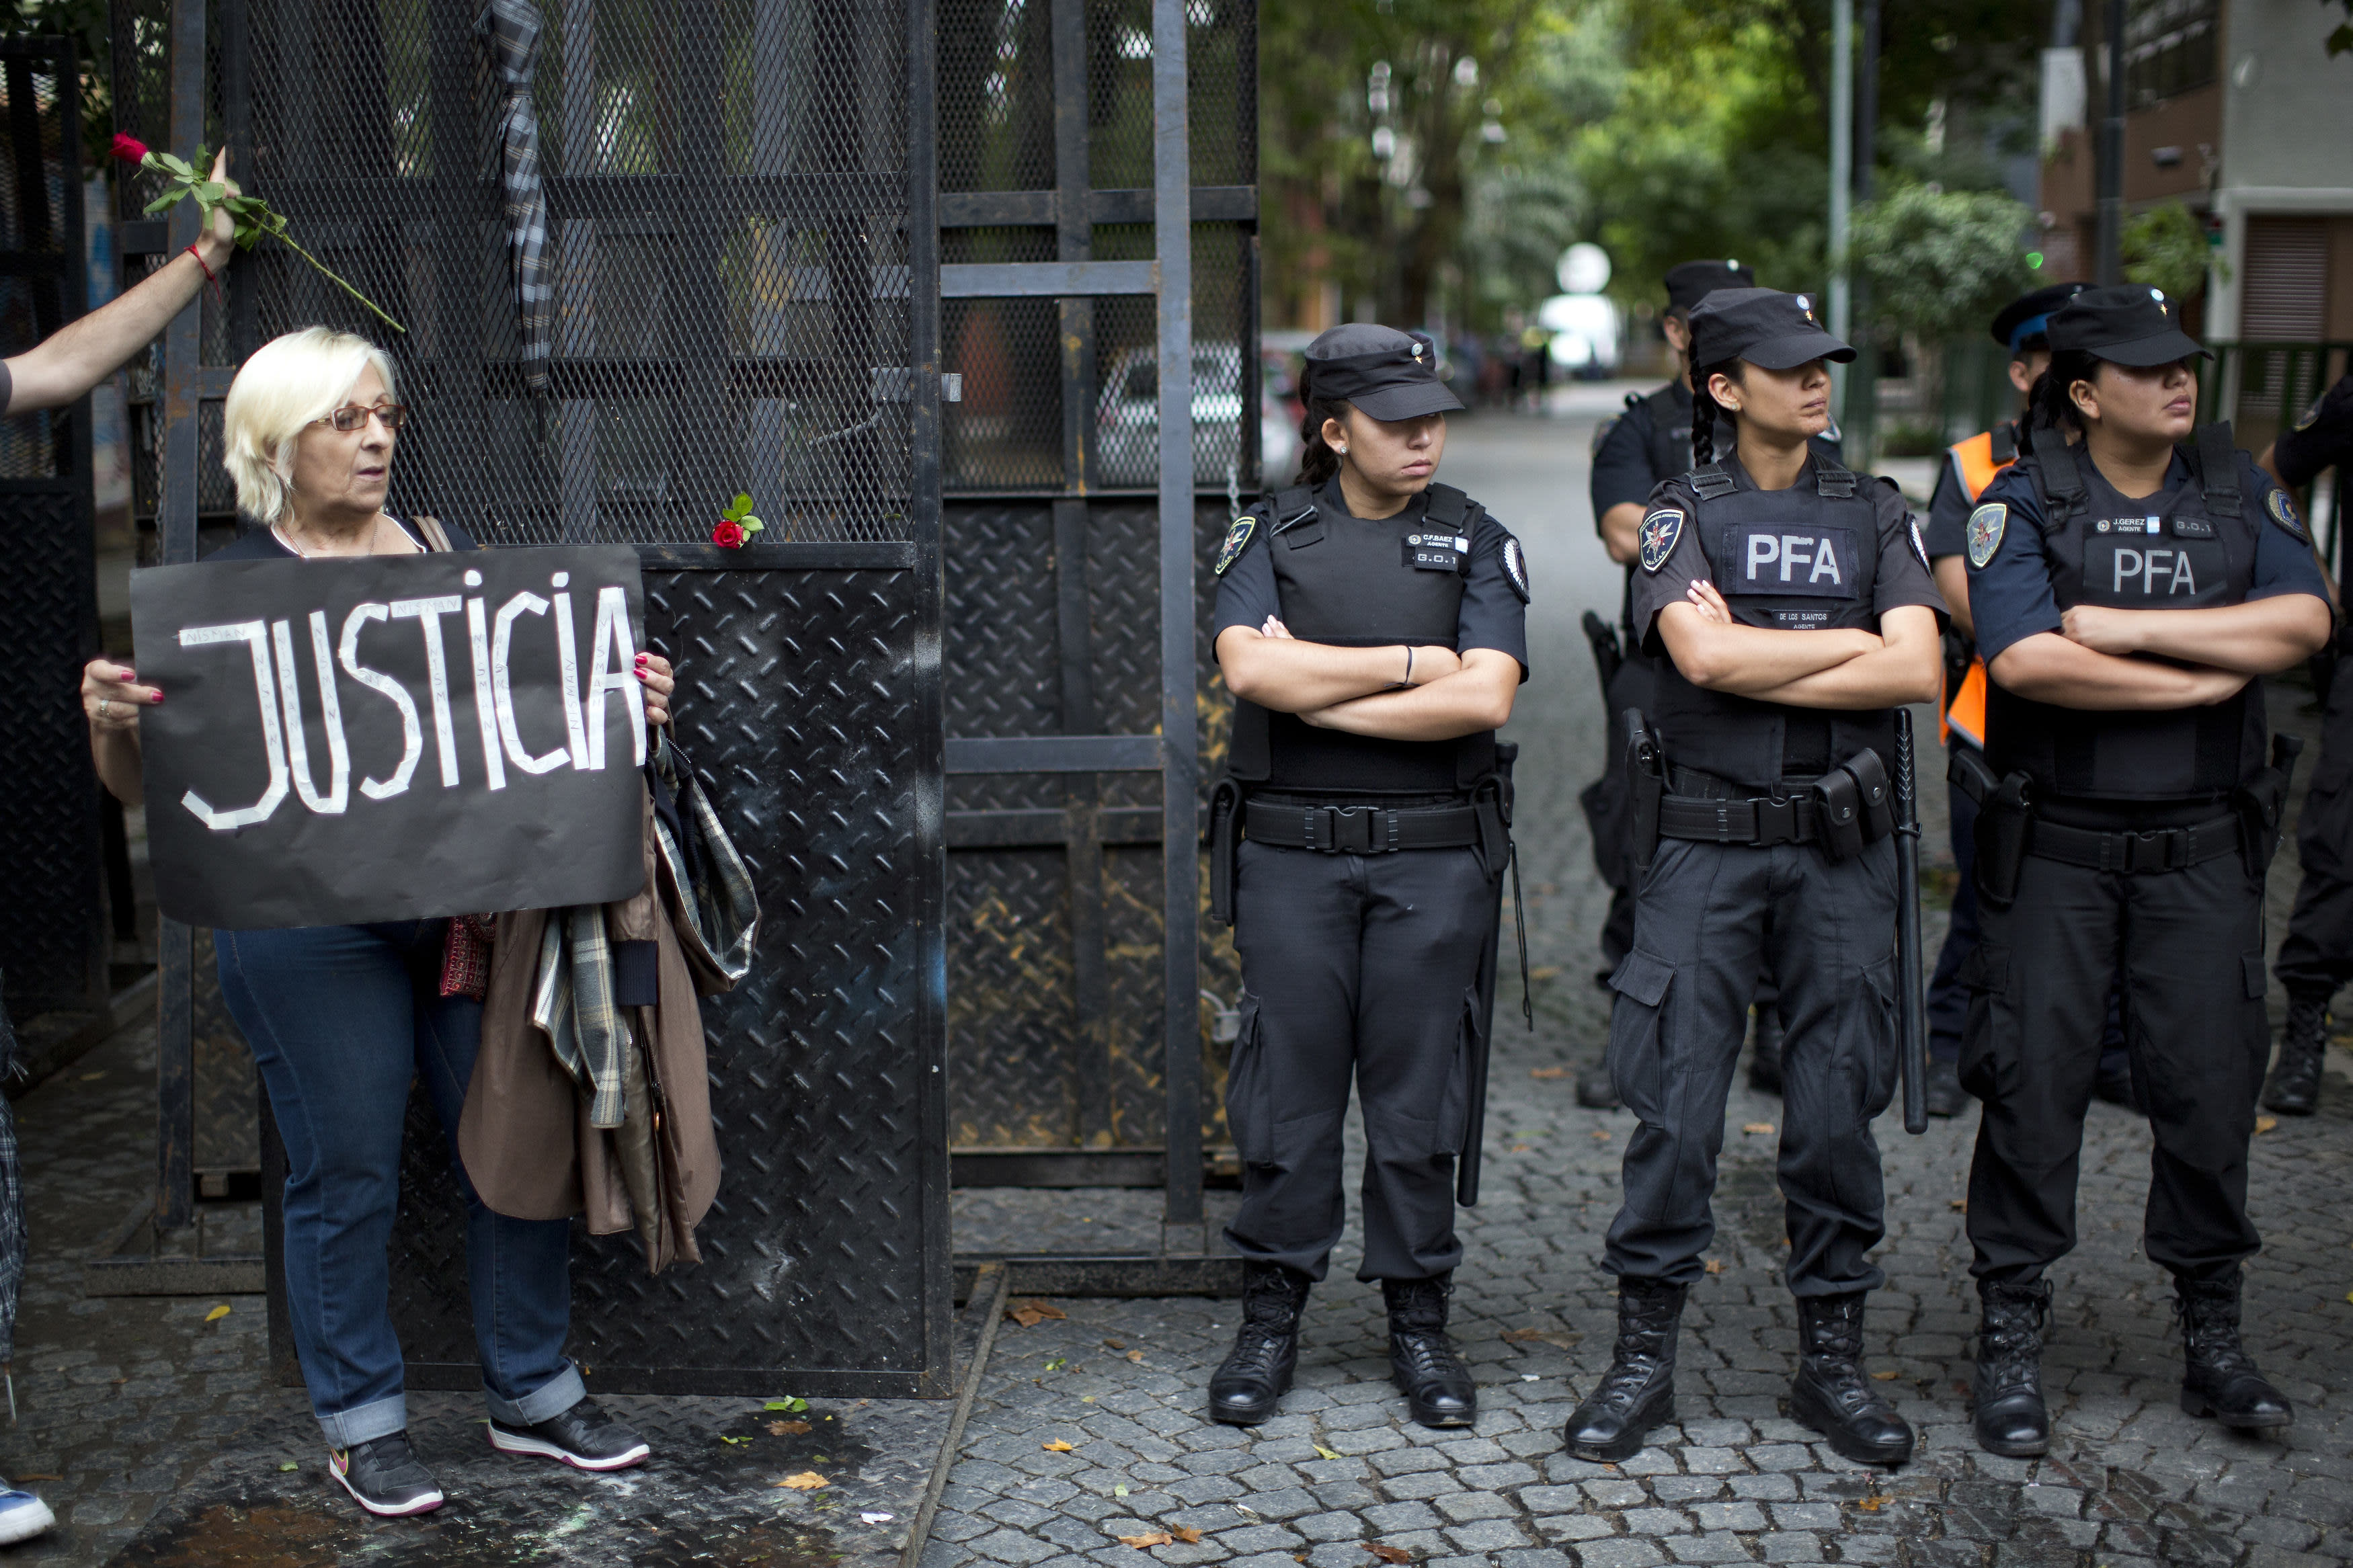 Much confusion, few answers, in Argentine prosecutor's death